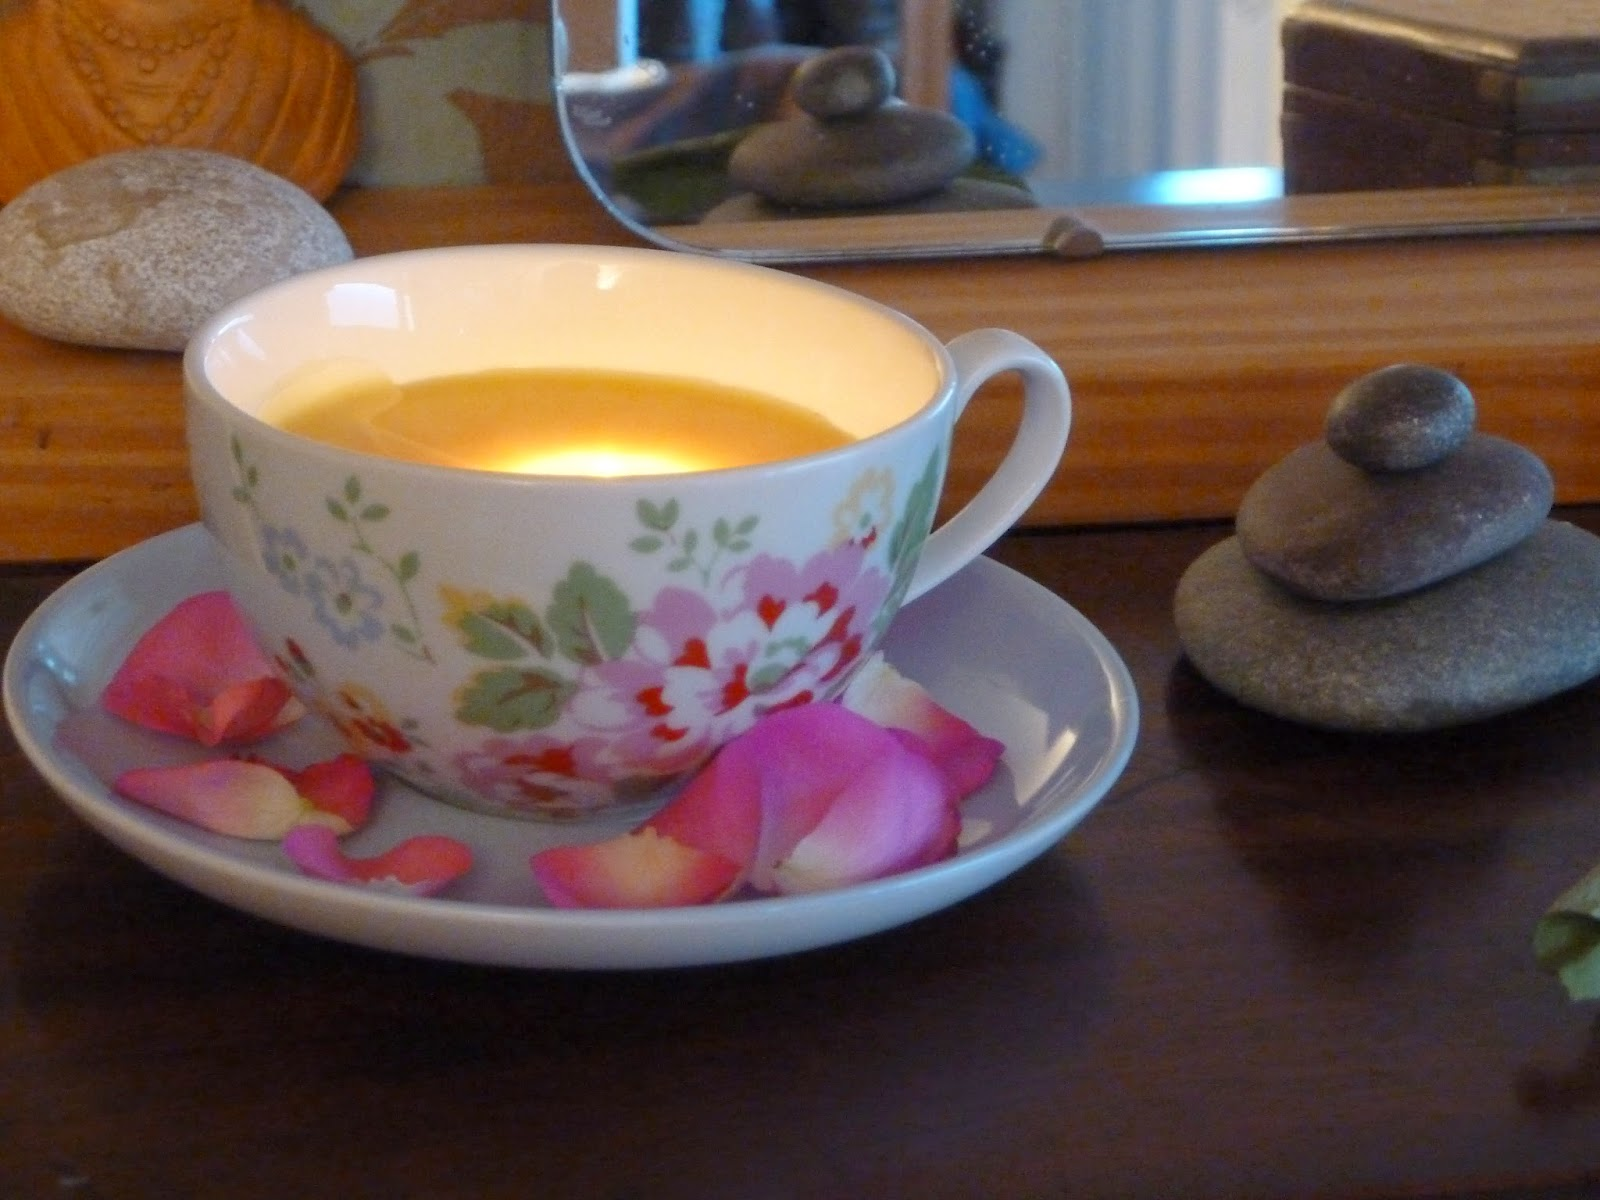 Beeswax candle in teacup with rose petals